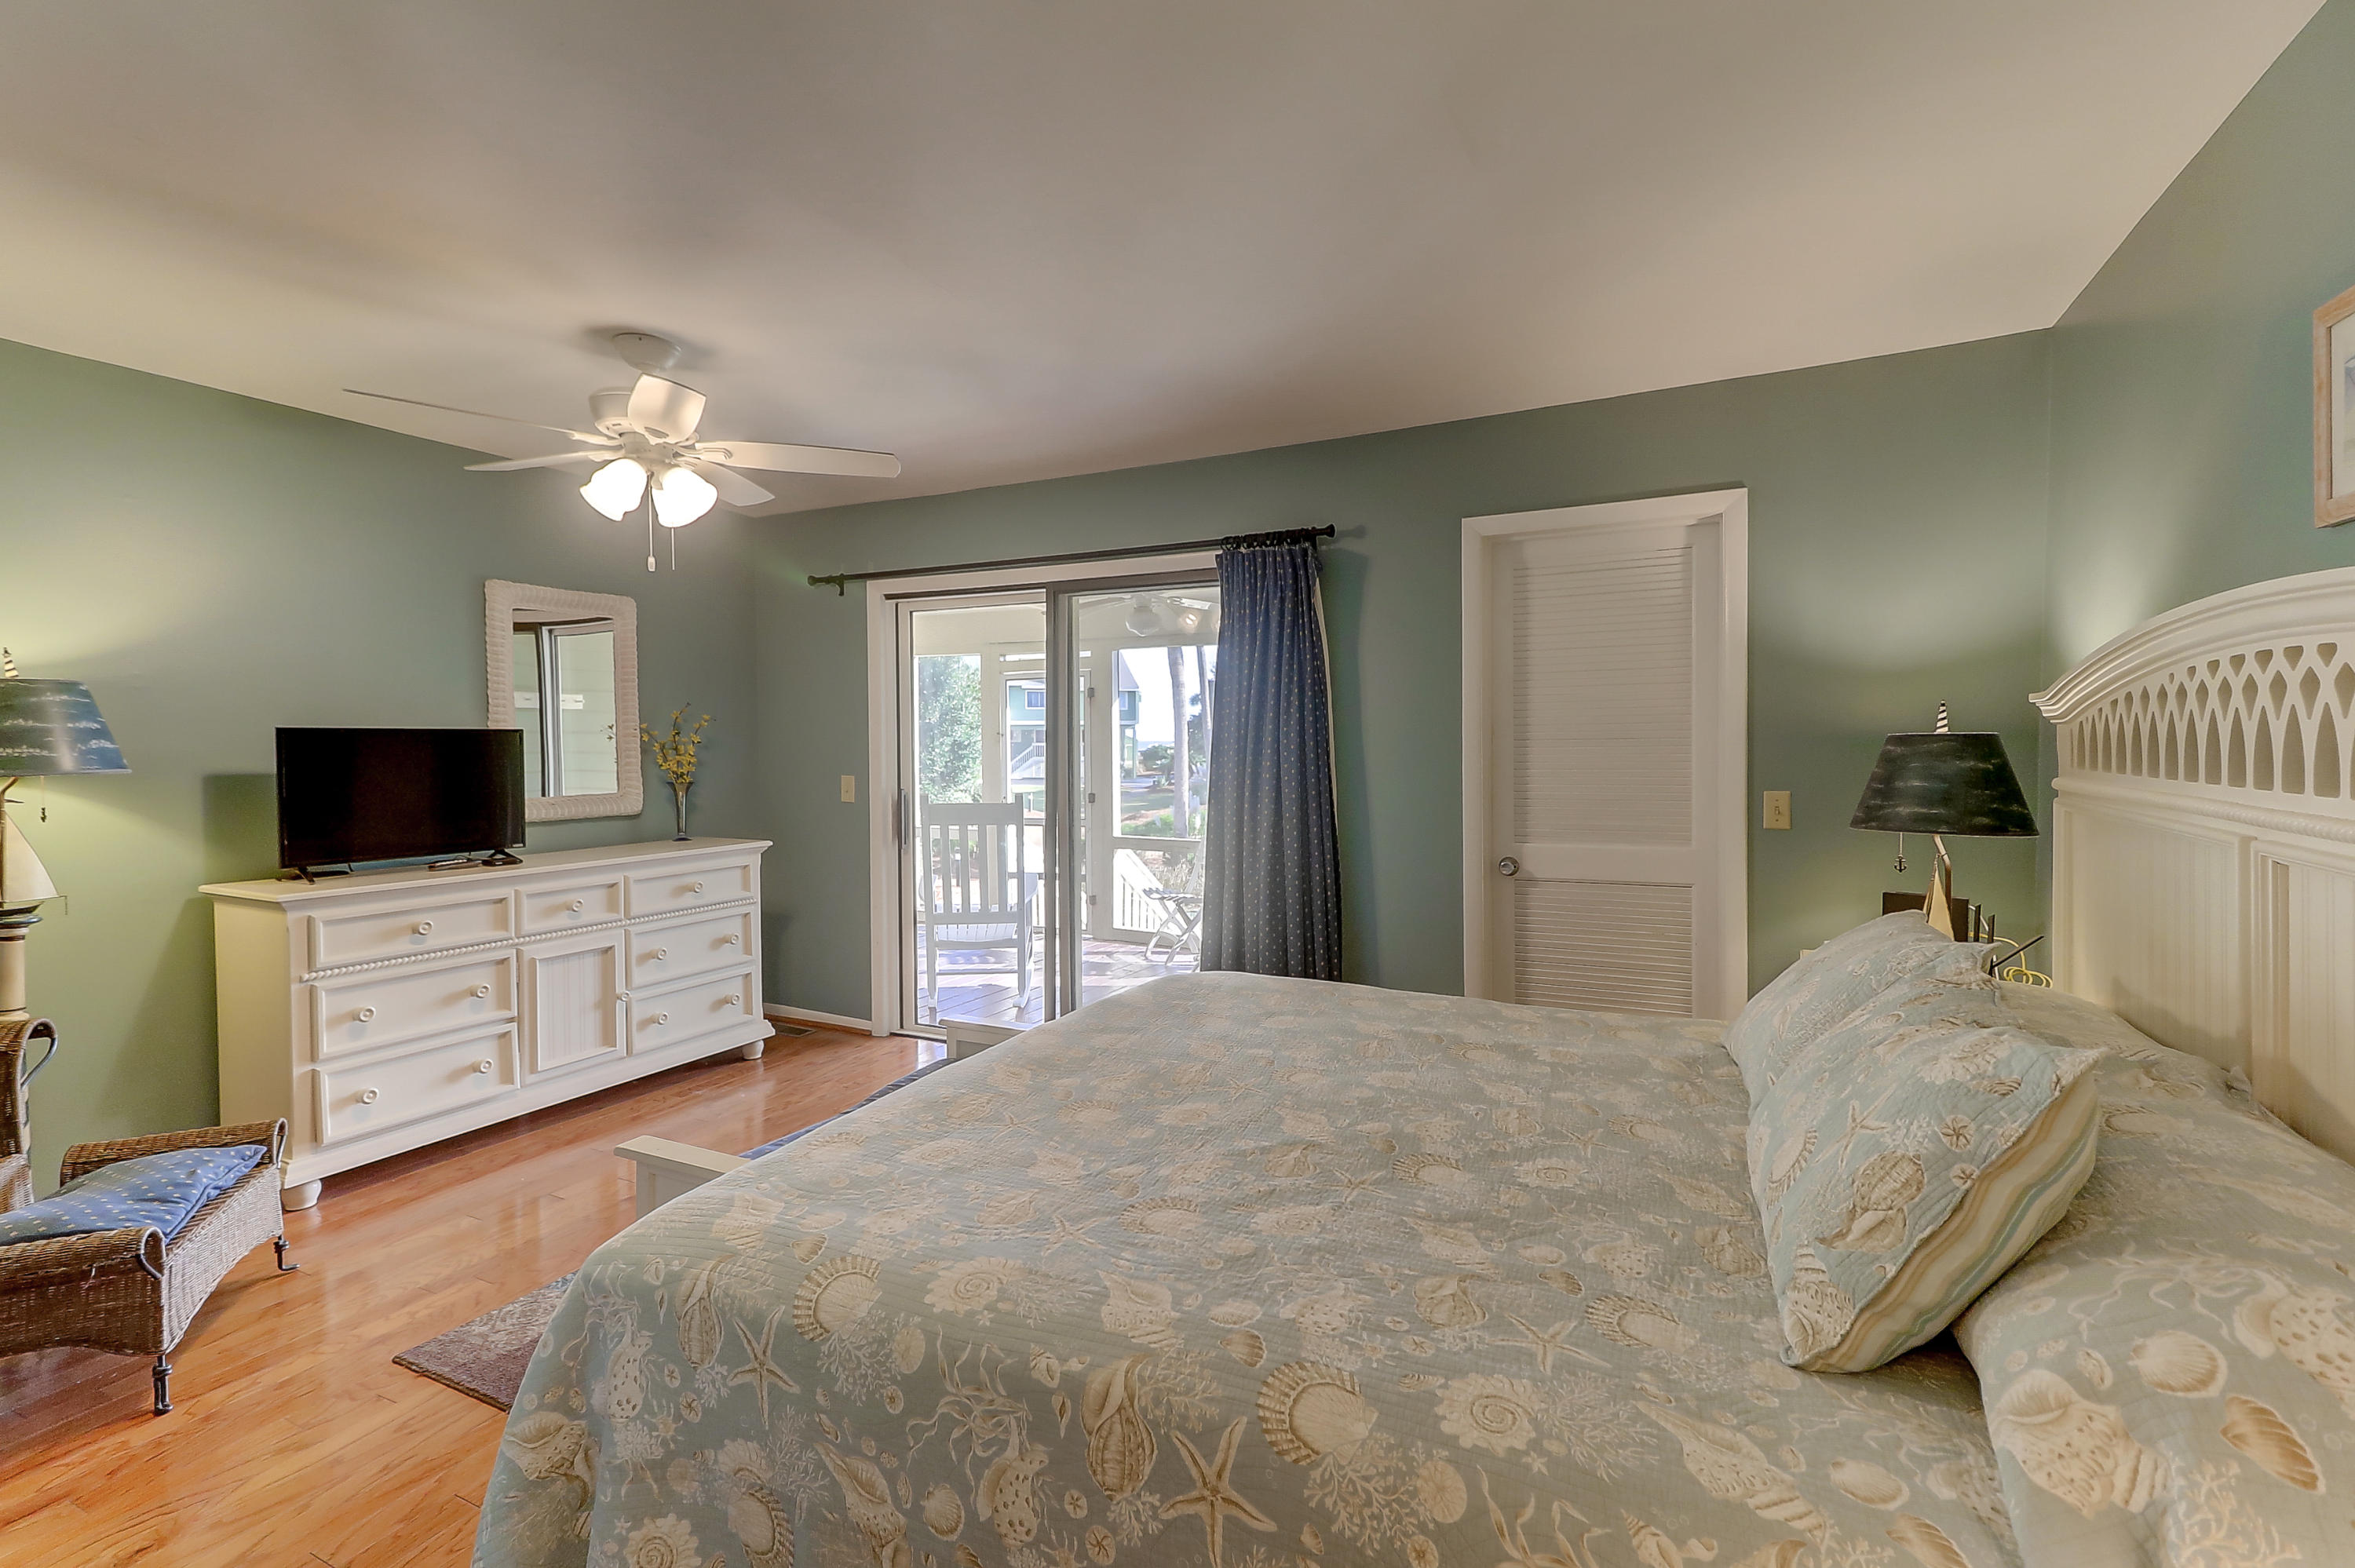 Wild Dunes Homes For Sale - 5-C Mariners Walk, Isle of Palms, SC - 0